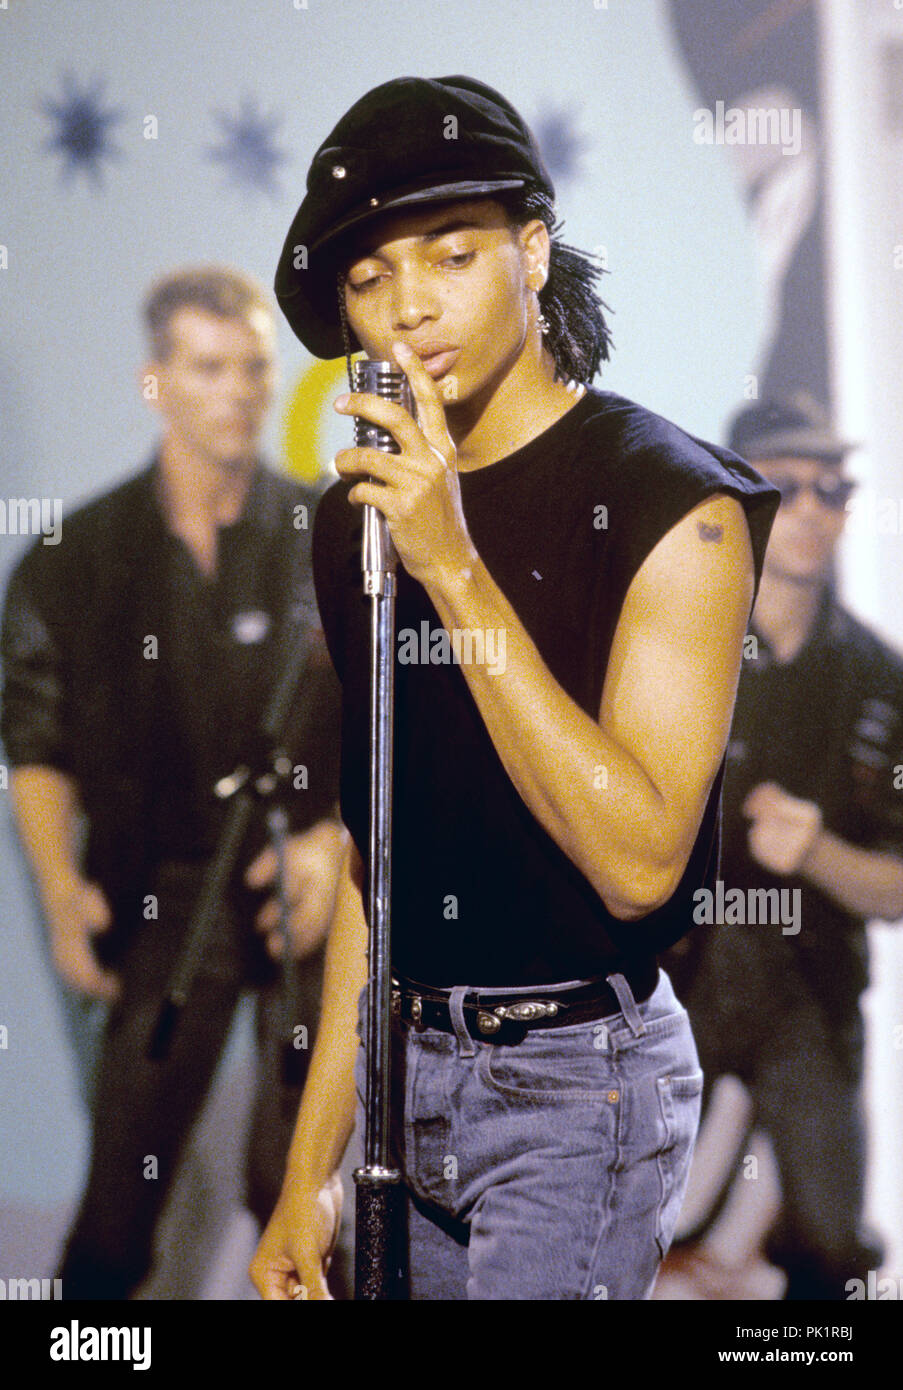 terence trent darby discography rar